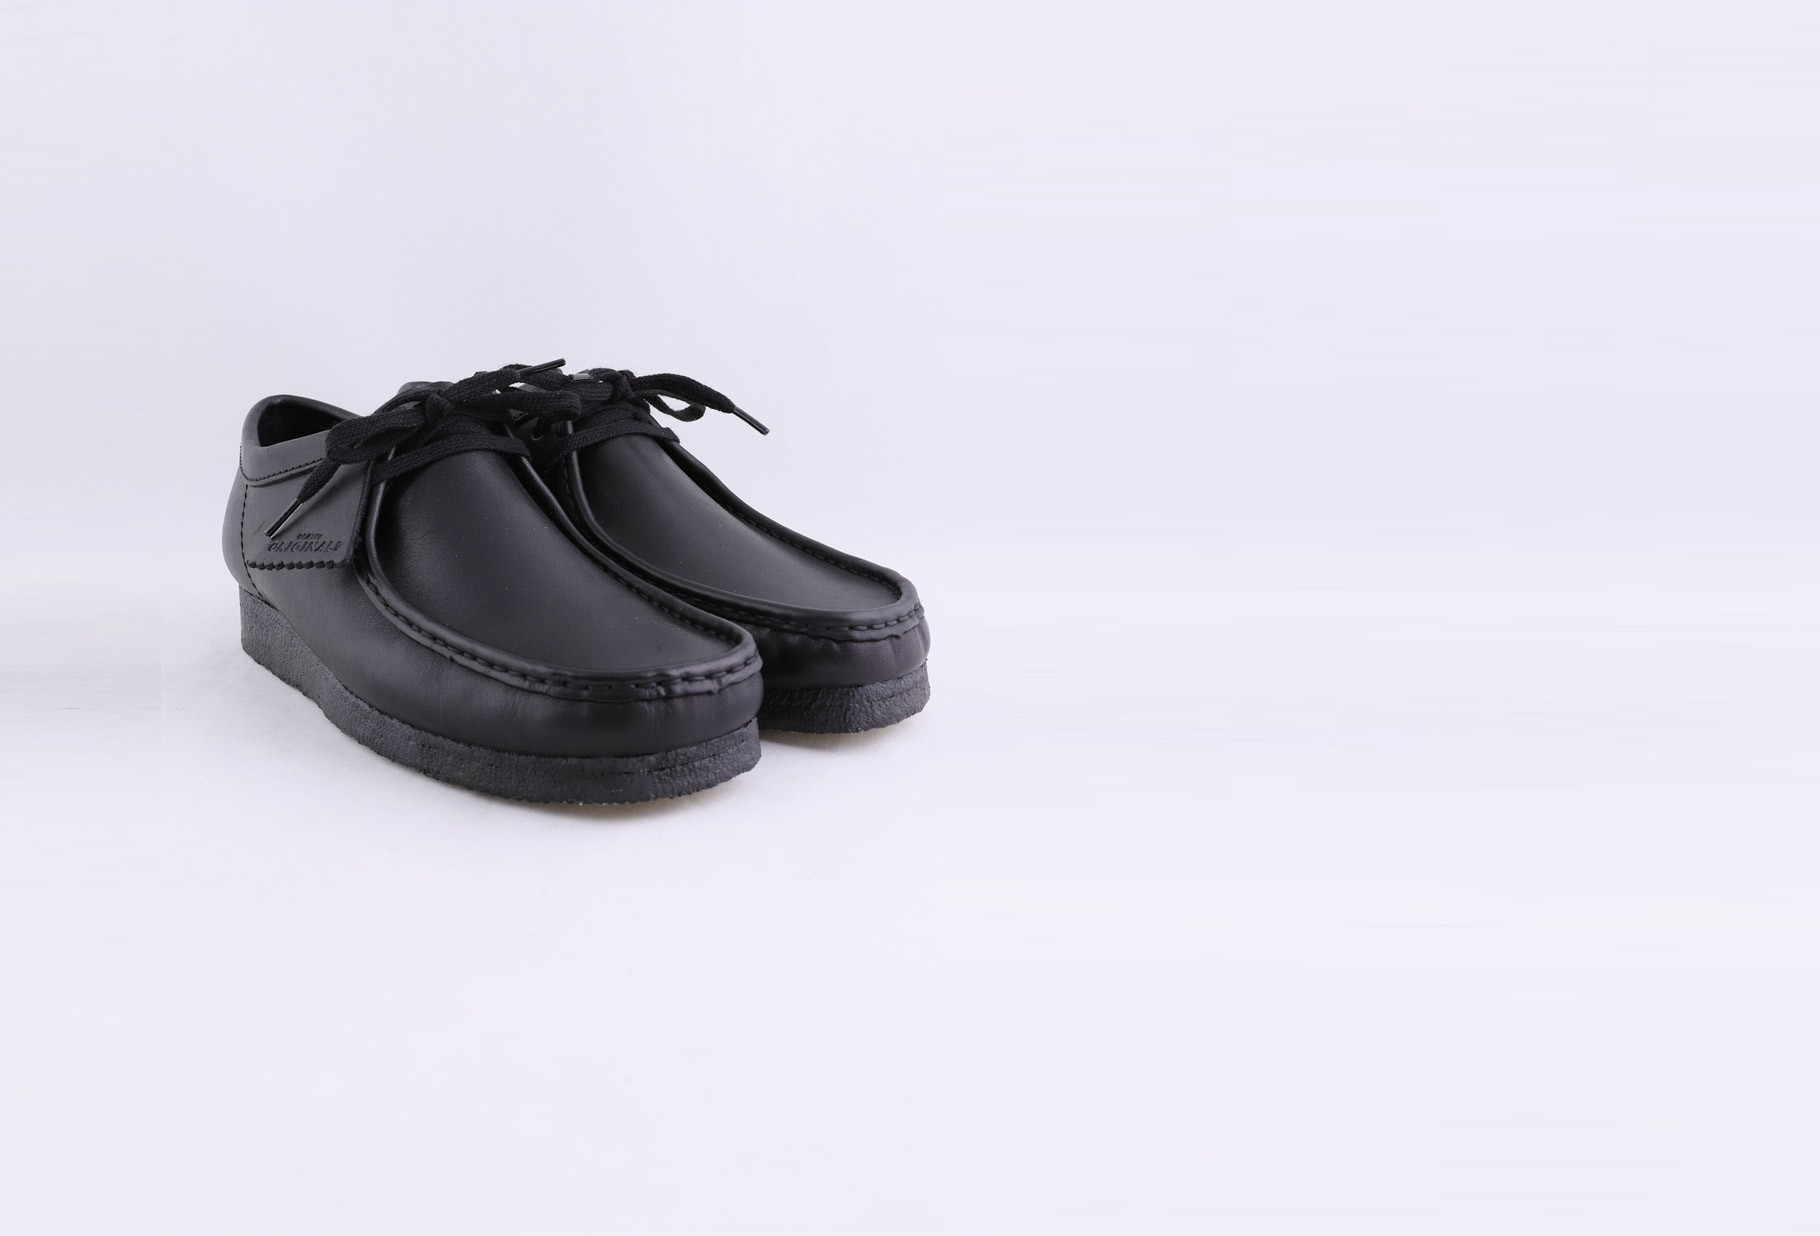 CLARKS ORIGINALS / Wallabee Black leather